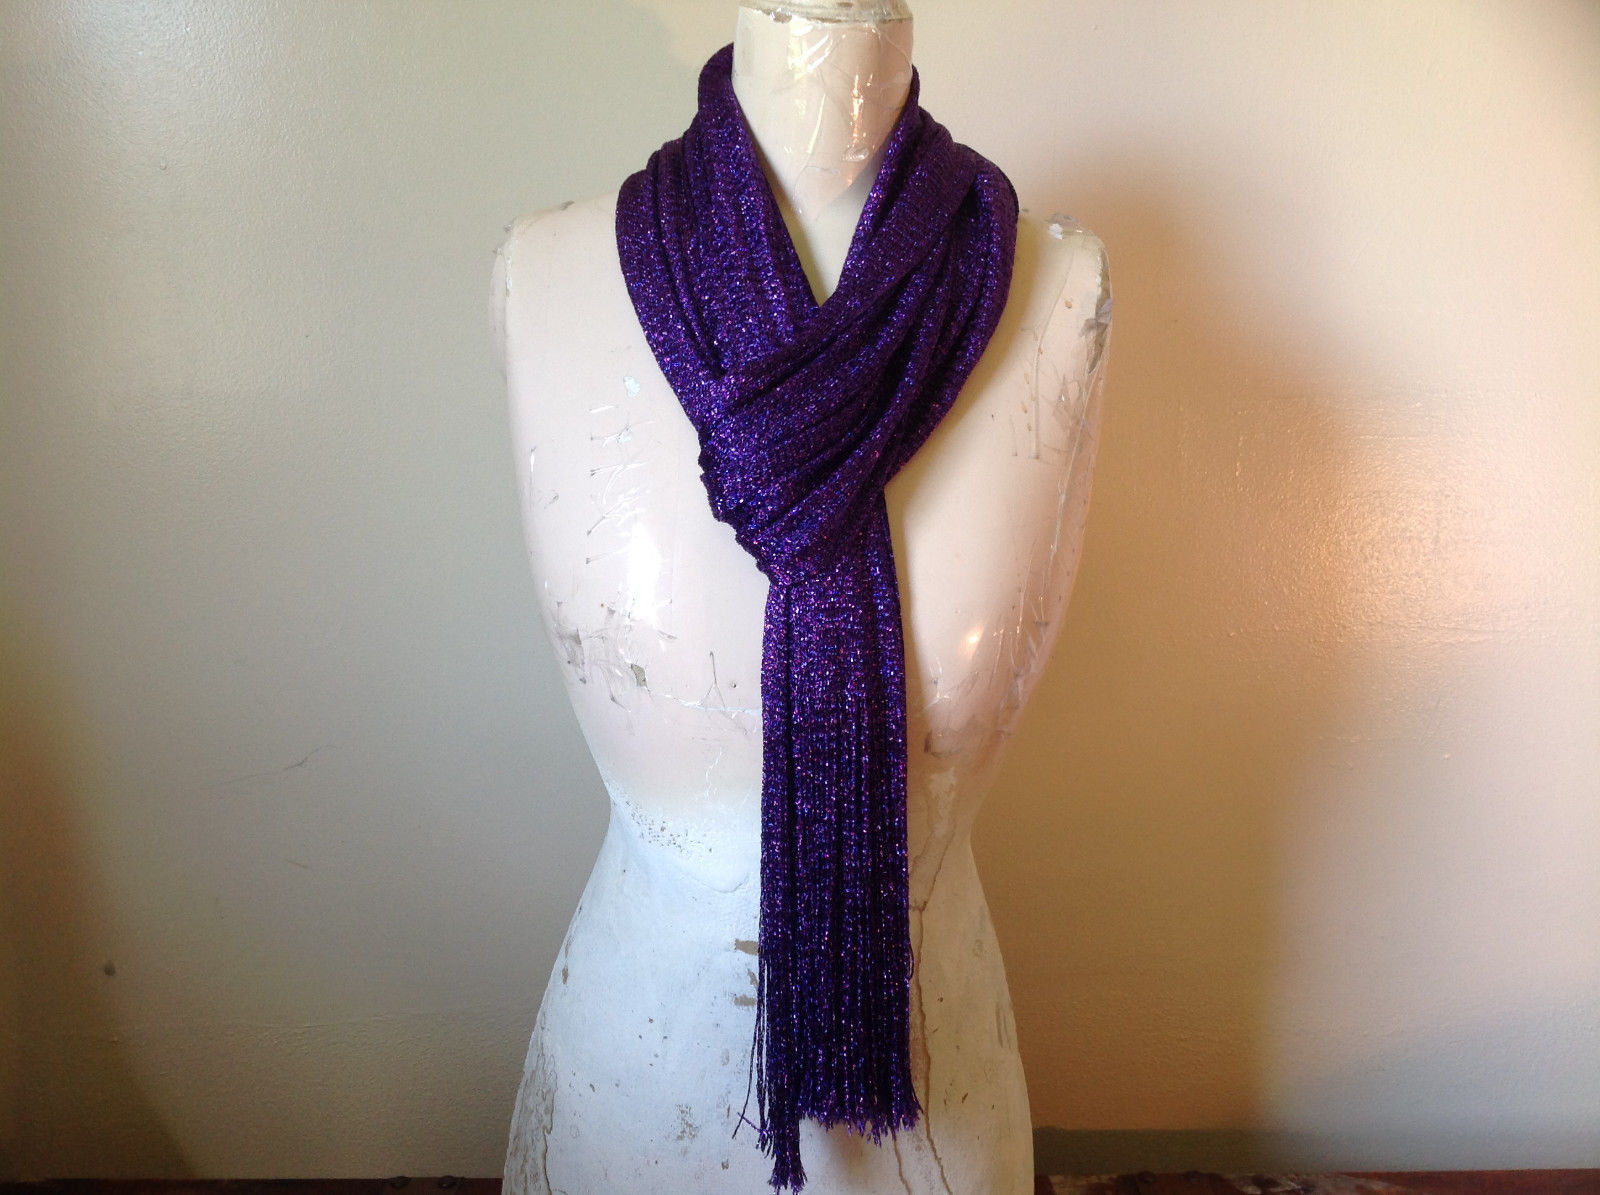 Elegant Purple Metallic Shine Tasseled Fashion Scarf w purple metallic threads